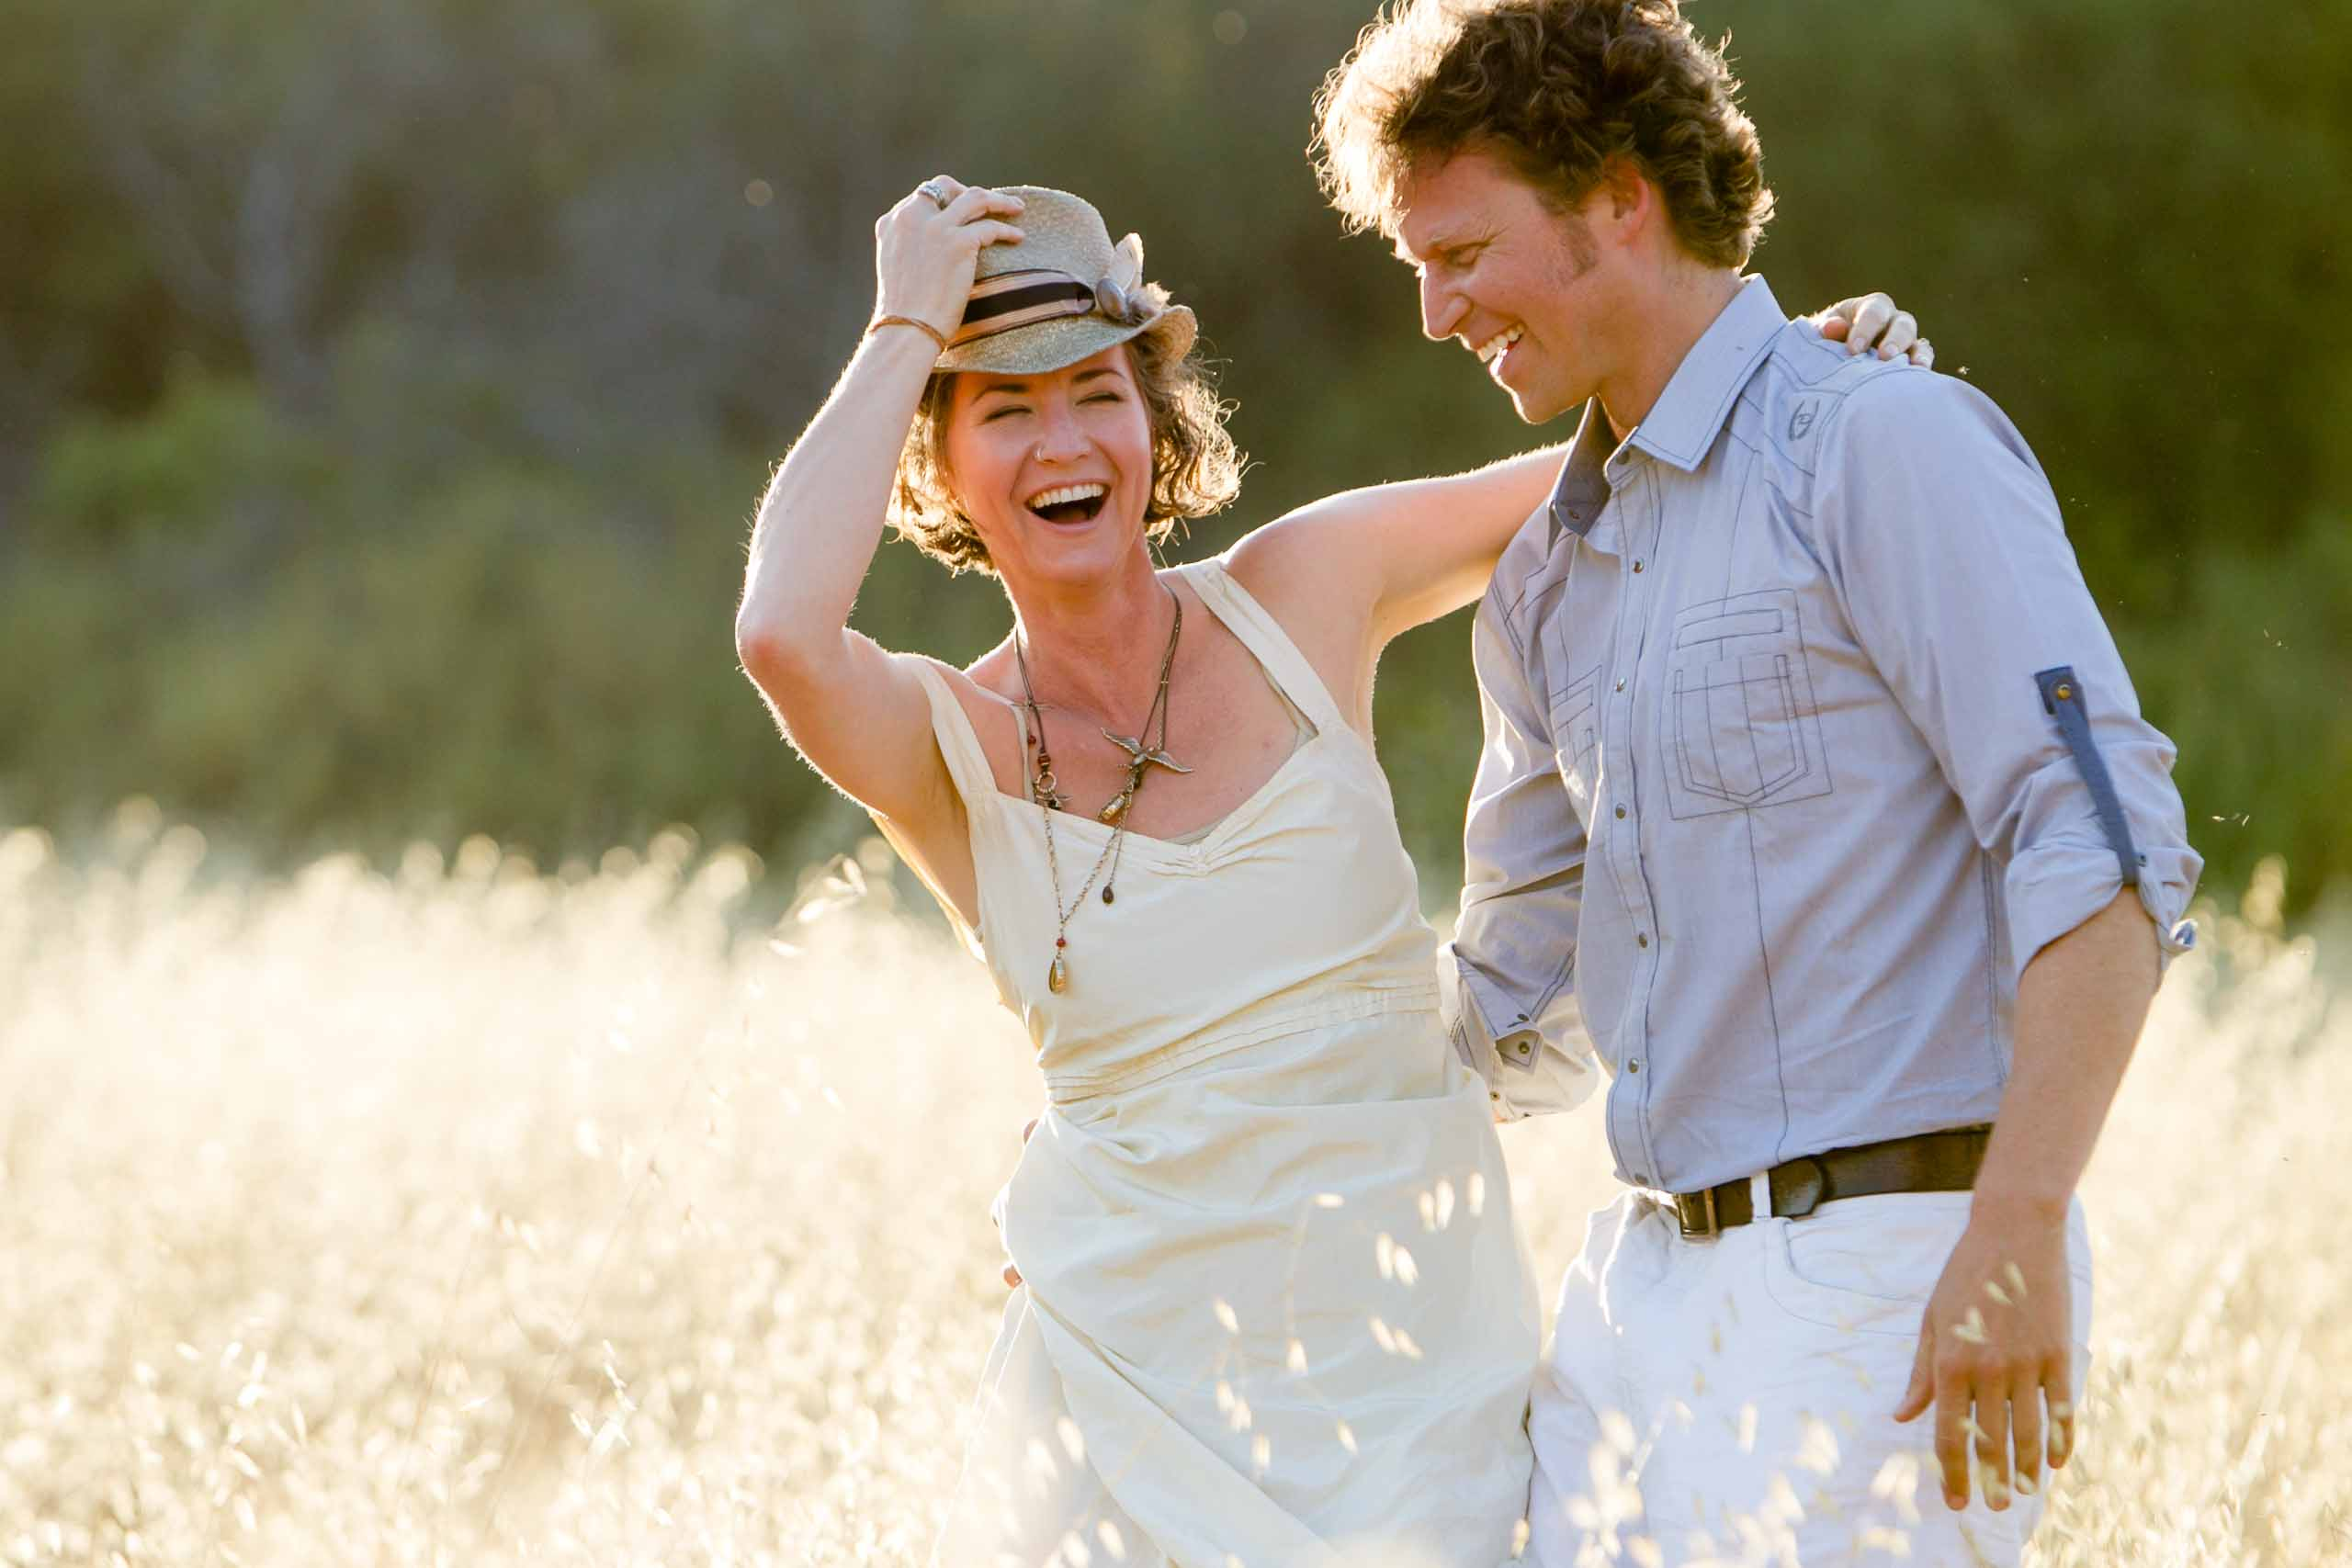 Jos and Tree engagement photos in Ojai California by Tomas Flint Photographer